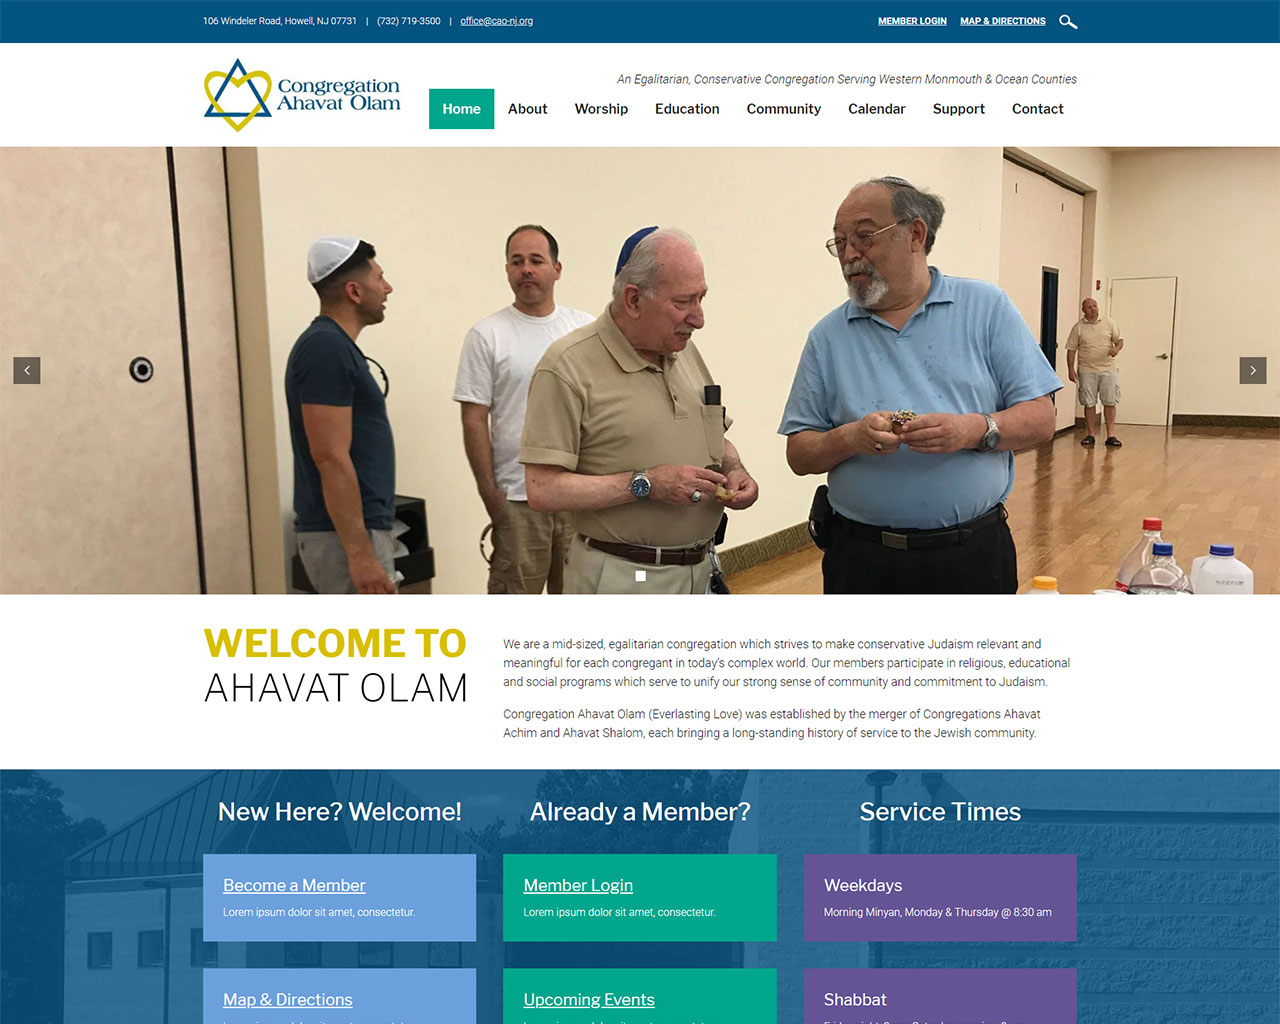 Congregation Ahavat Olam - synagogue website homepage